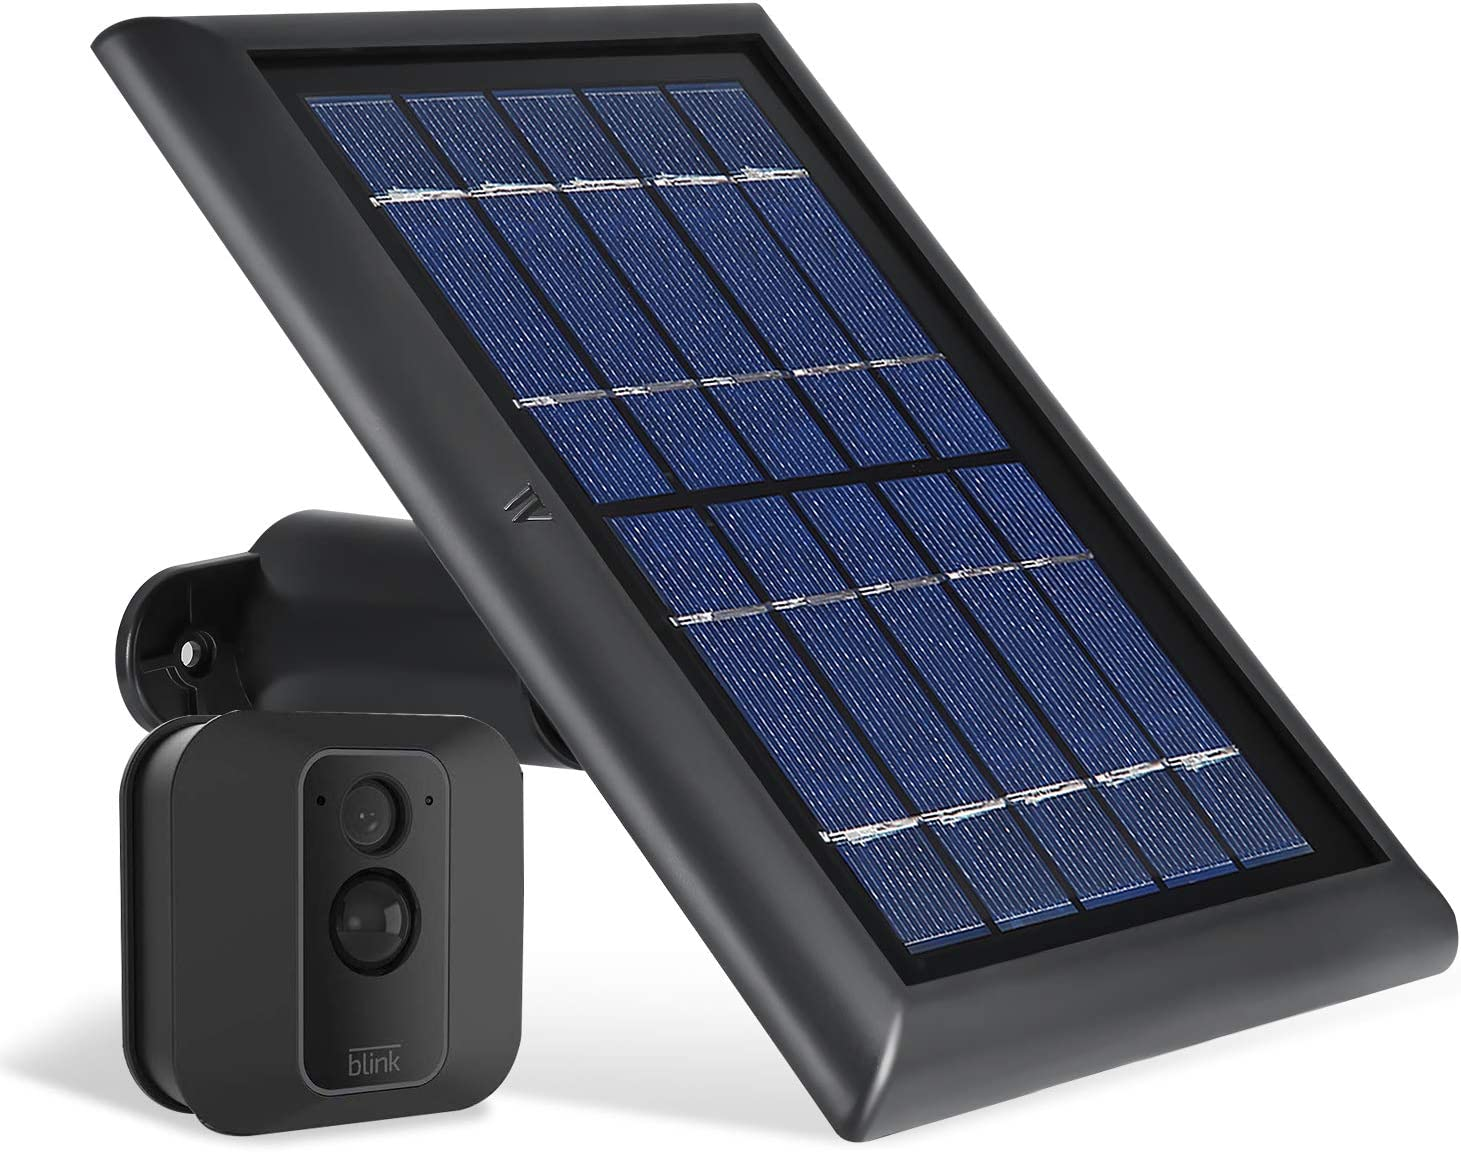 Wasserstein Solar Panel with Internal Battery Compatible with Blink XT and Blink XT2 Outdoor Camera Black